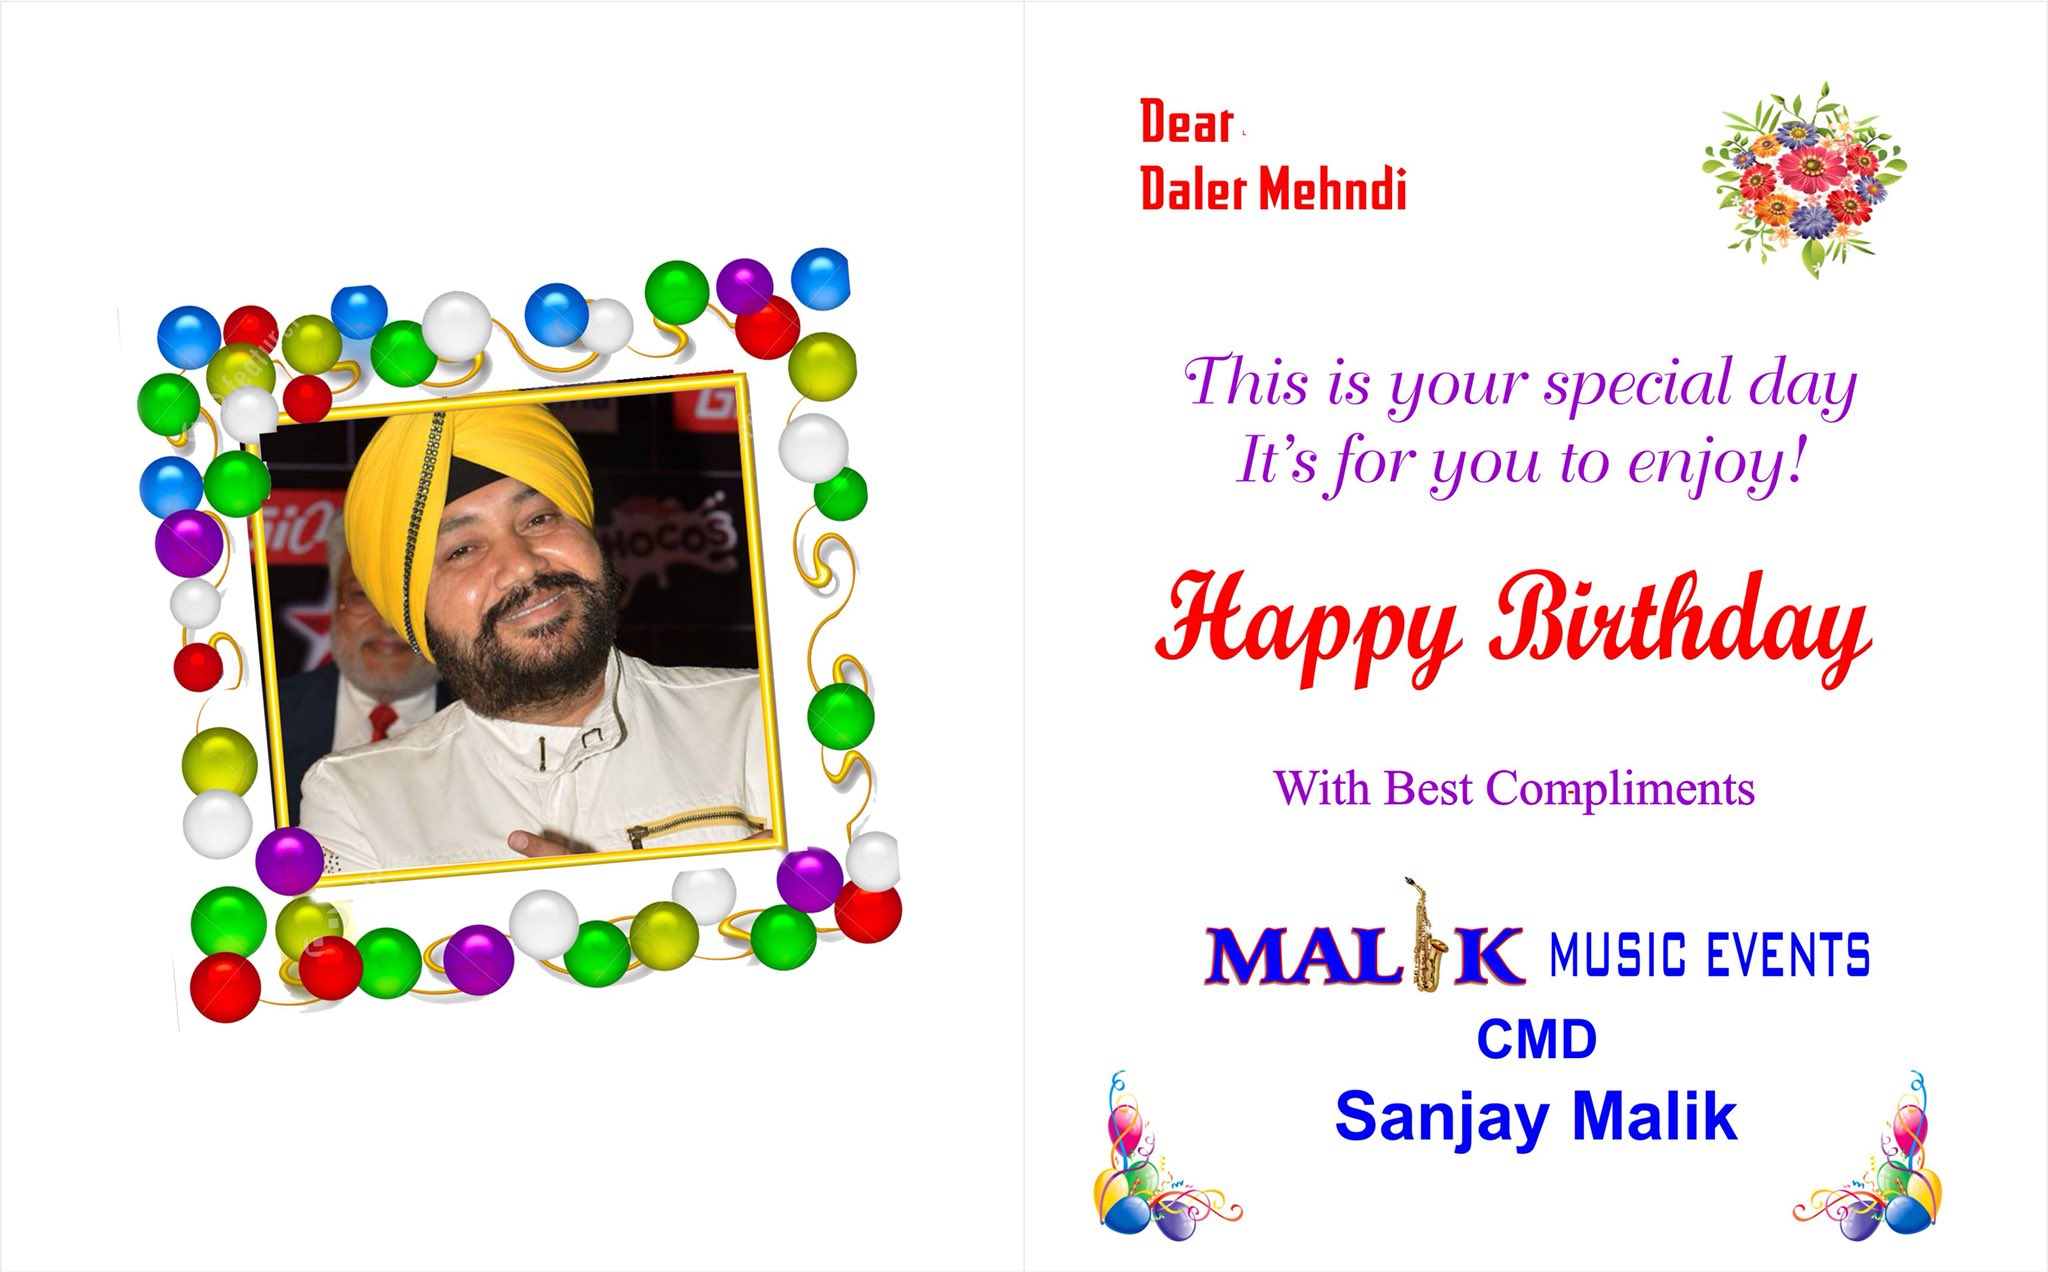 The golden voice singer daler mehndi sahab happy birthday